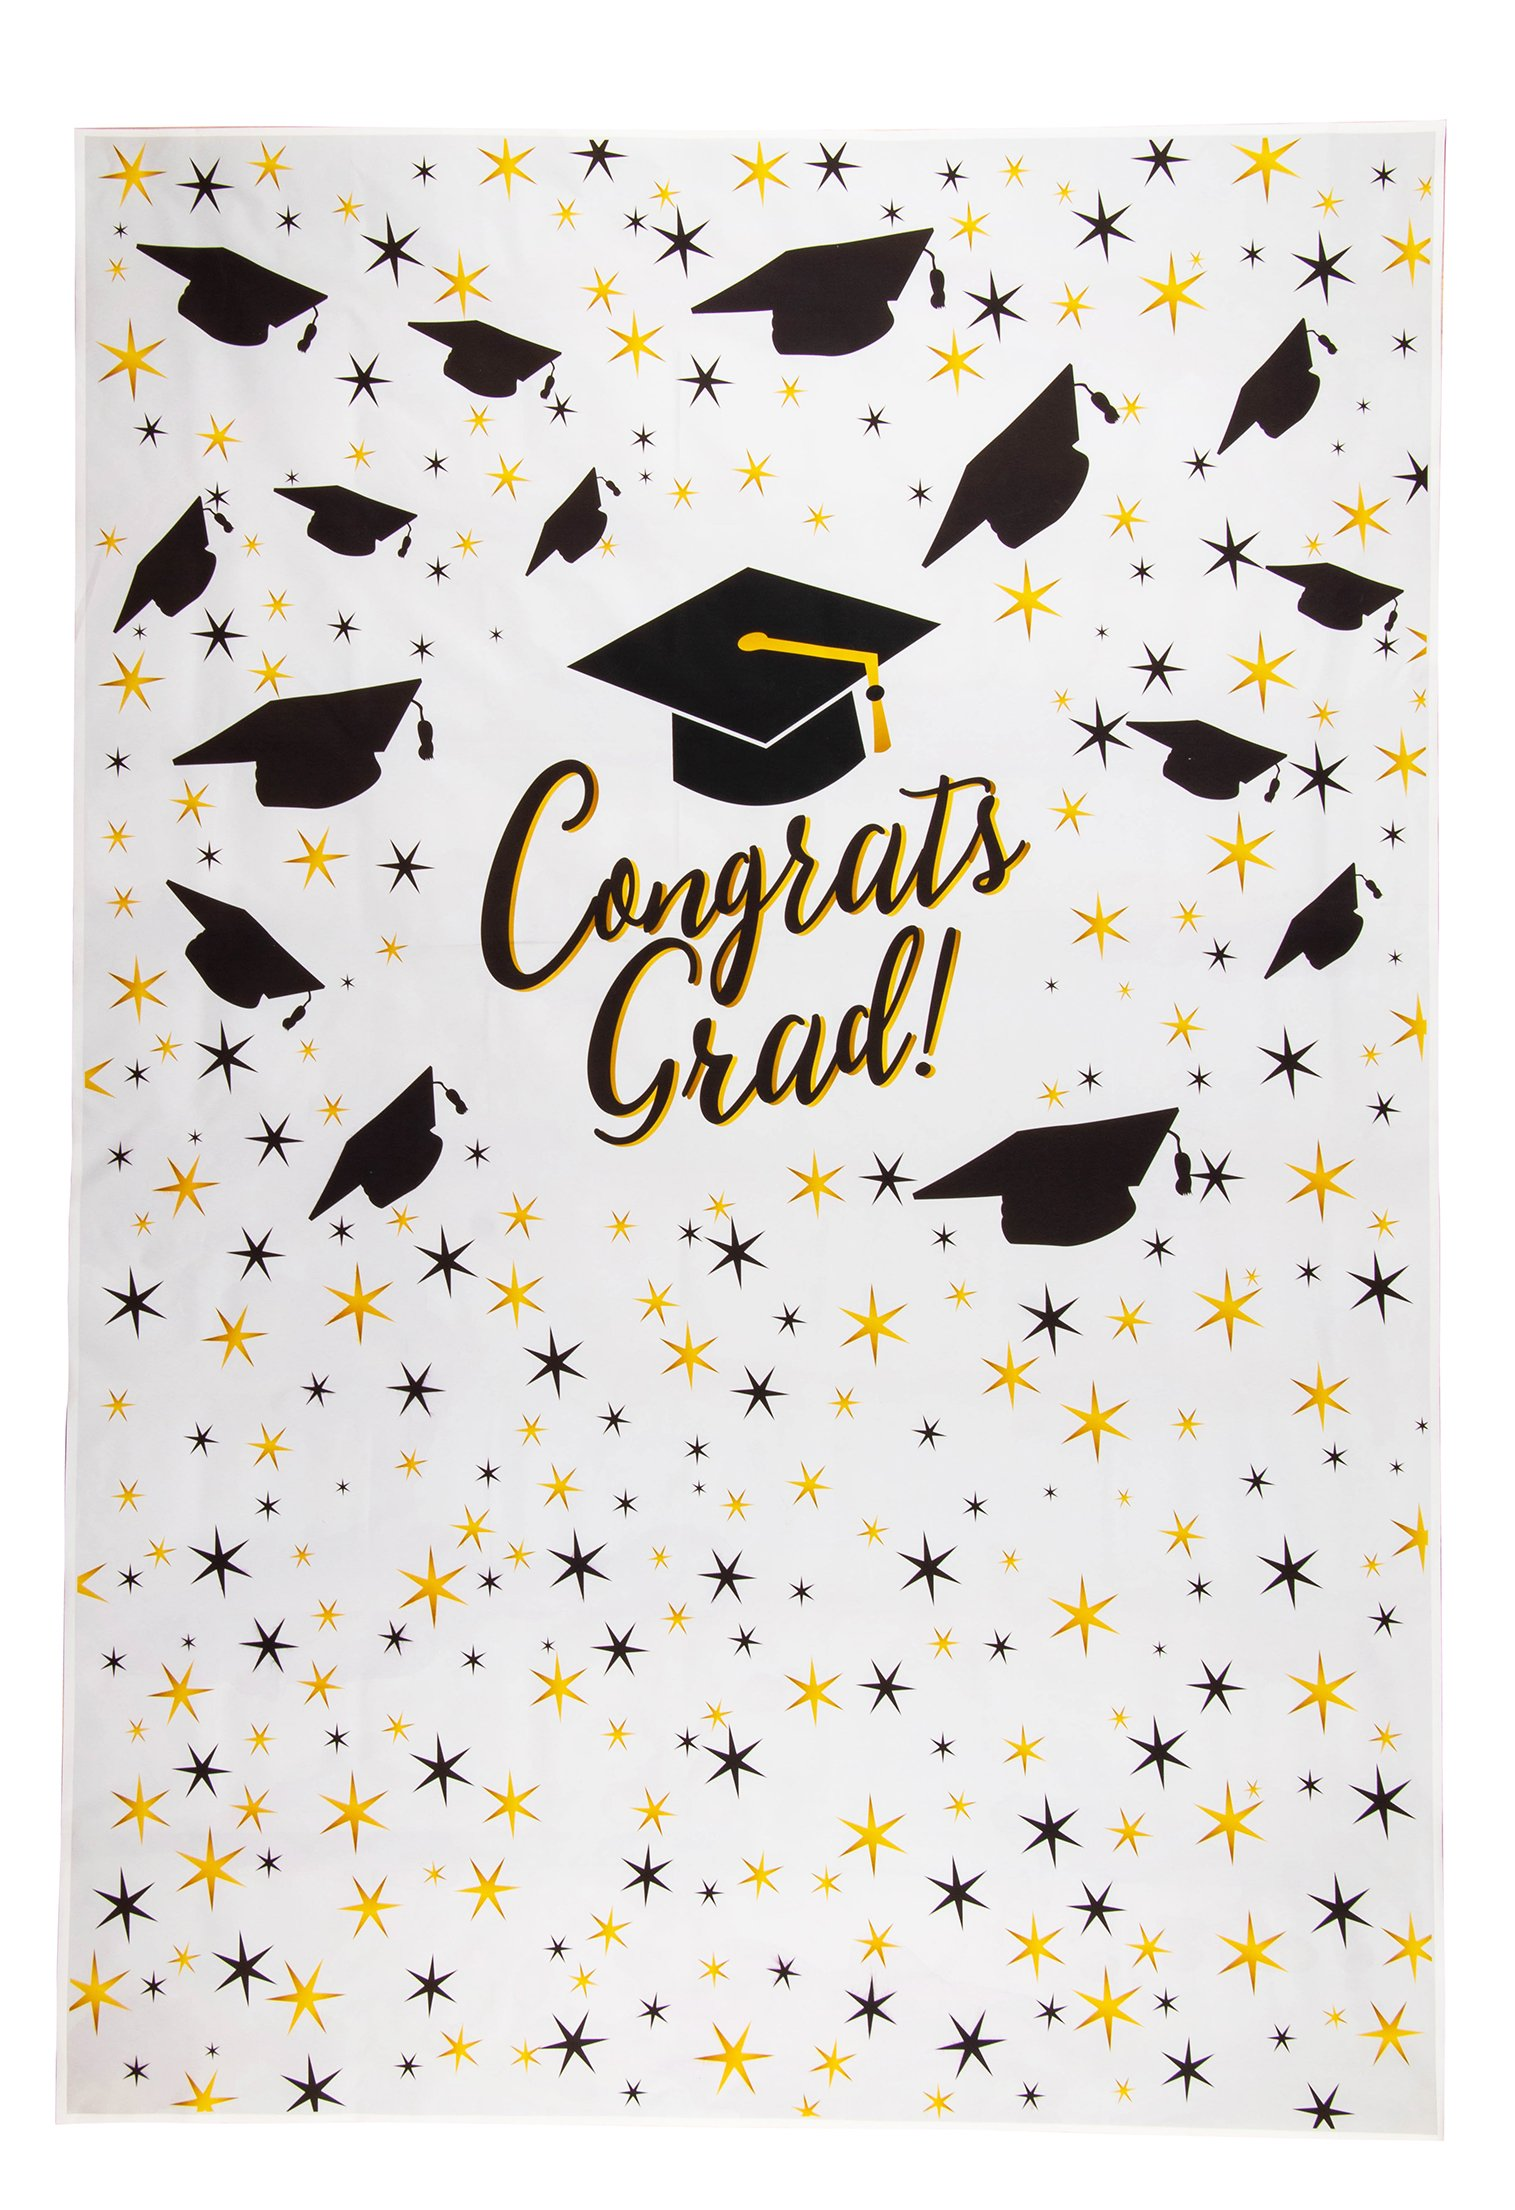 Graduation Photo Backdrop - 2018 Photo-Booth Background with Congrats Grad and Graduation Cap Design, White Photography Party Background, 5 x 7 Feet